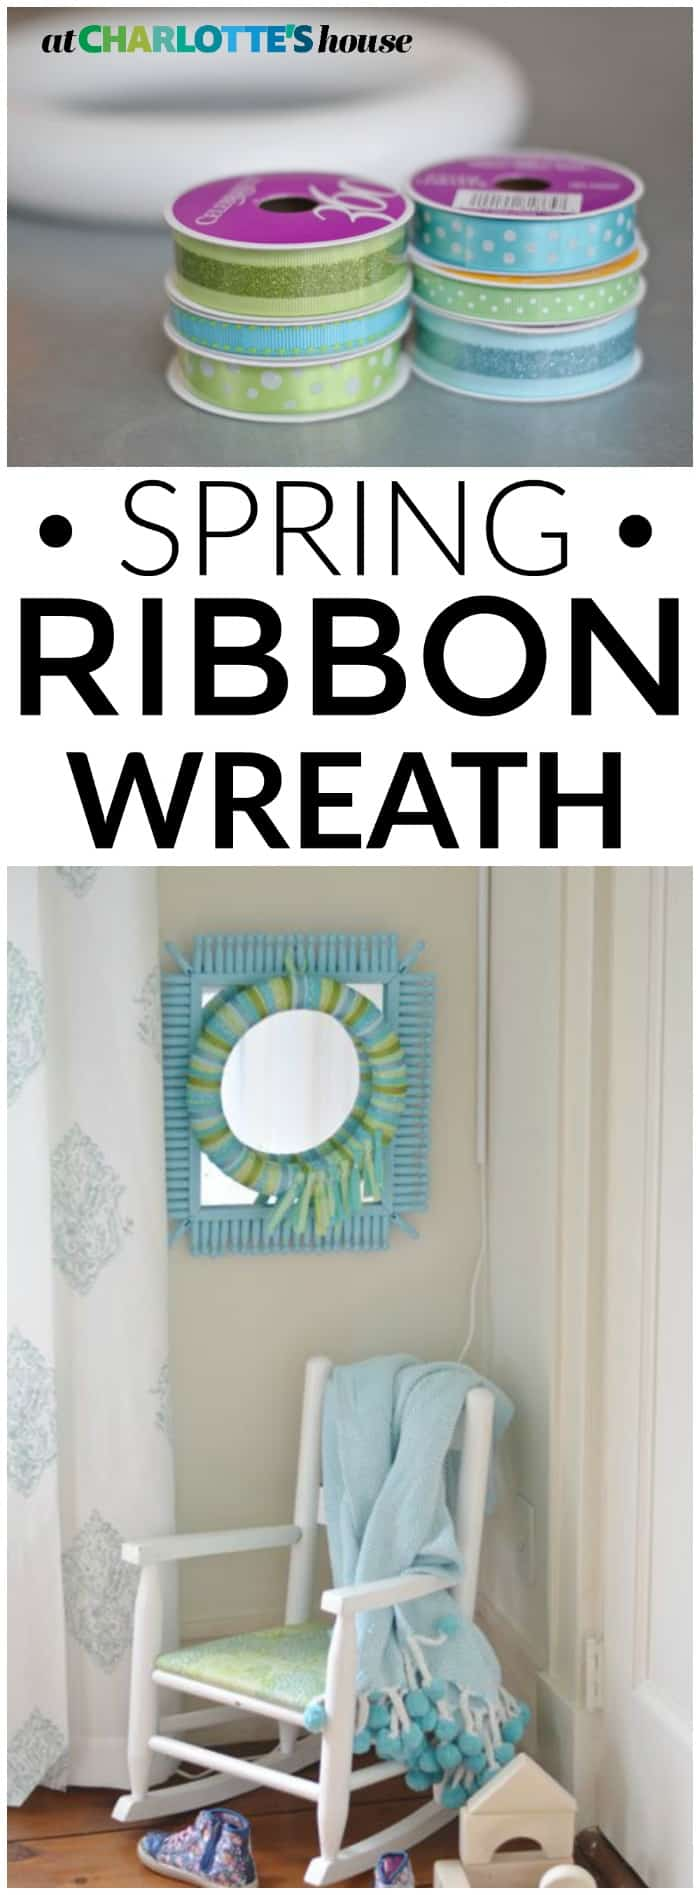 Make this easy and CHEAP wreath for spring in no time at all... loving the pattern in there!